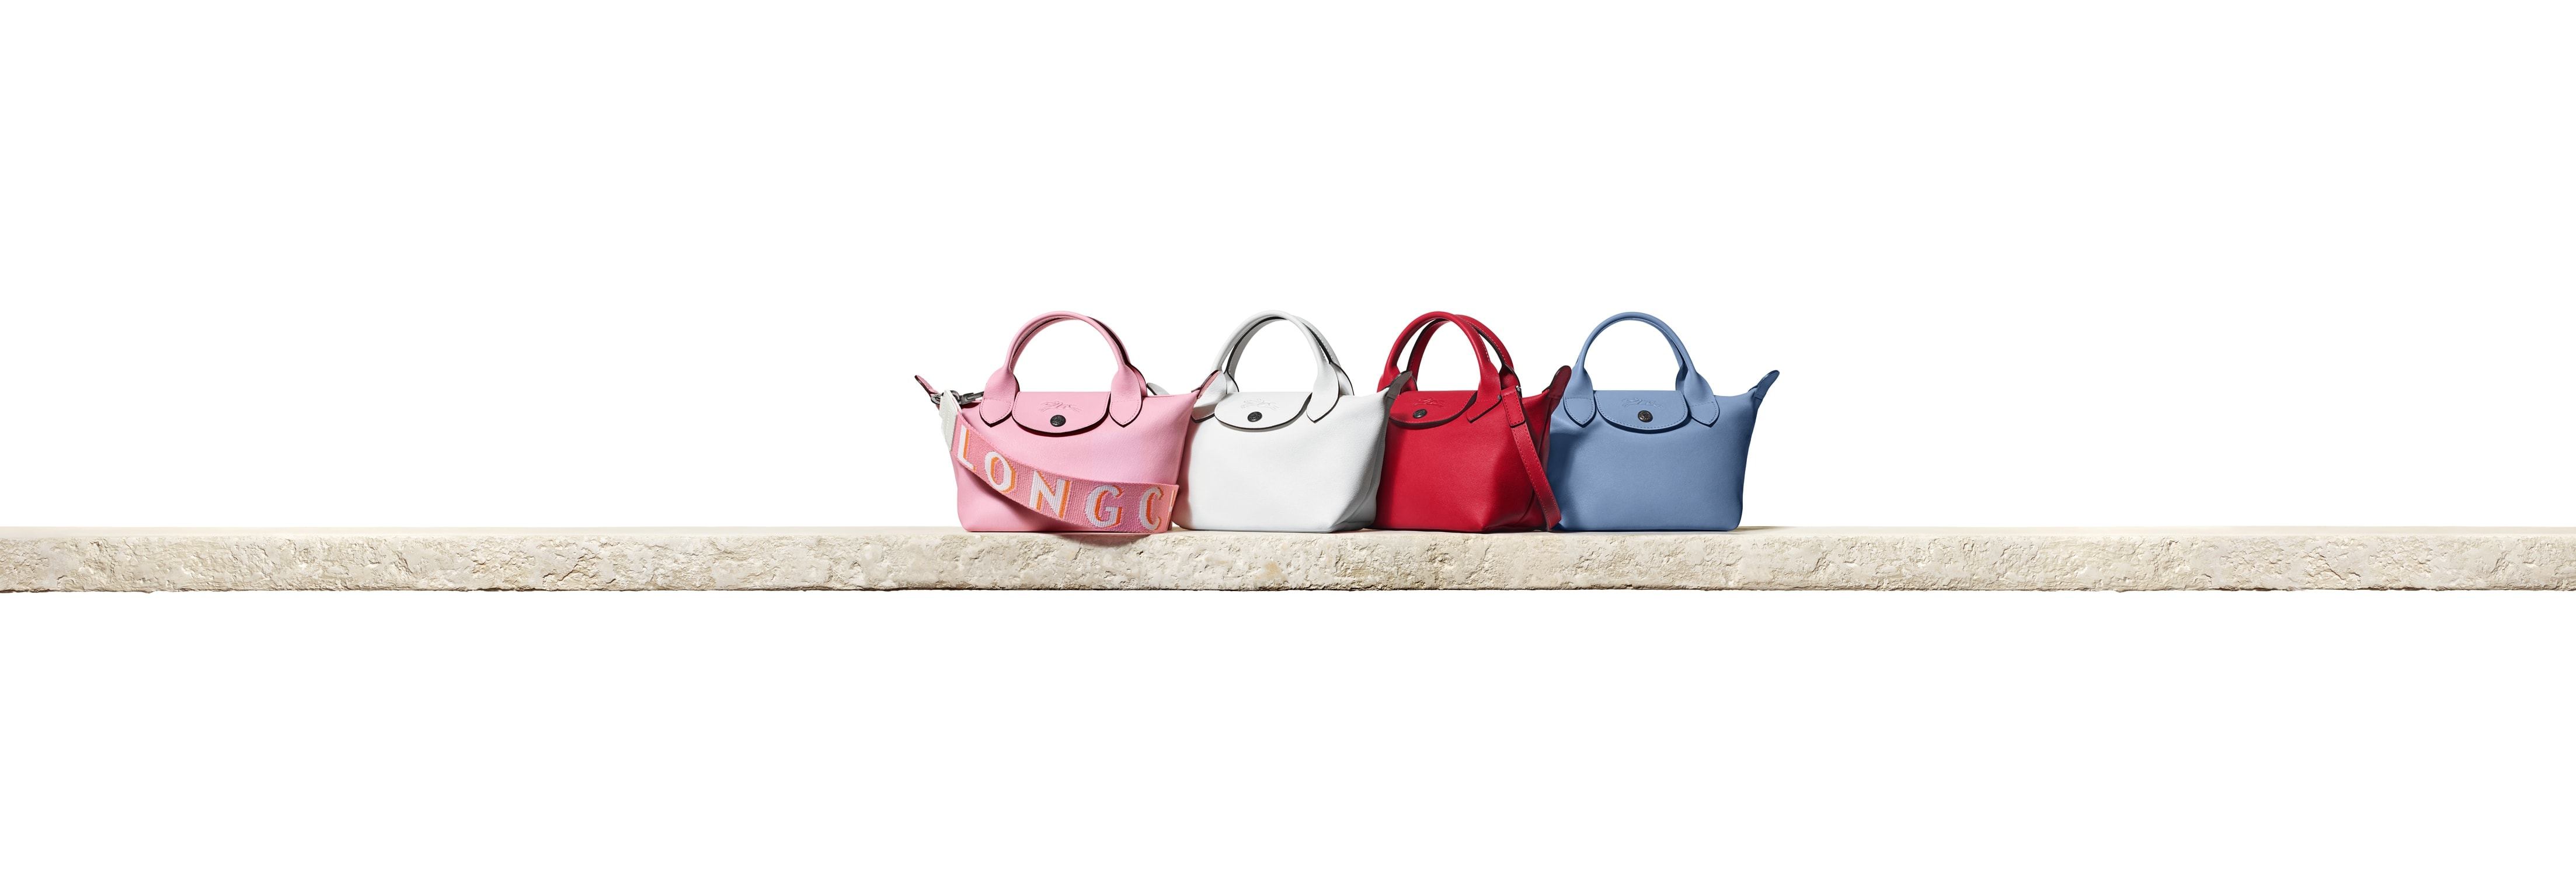 Shopping > longchamps maroquinerie recrutement, Up to 69% OFF